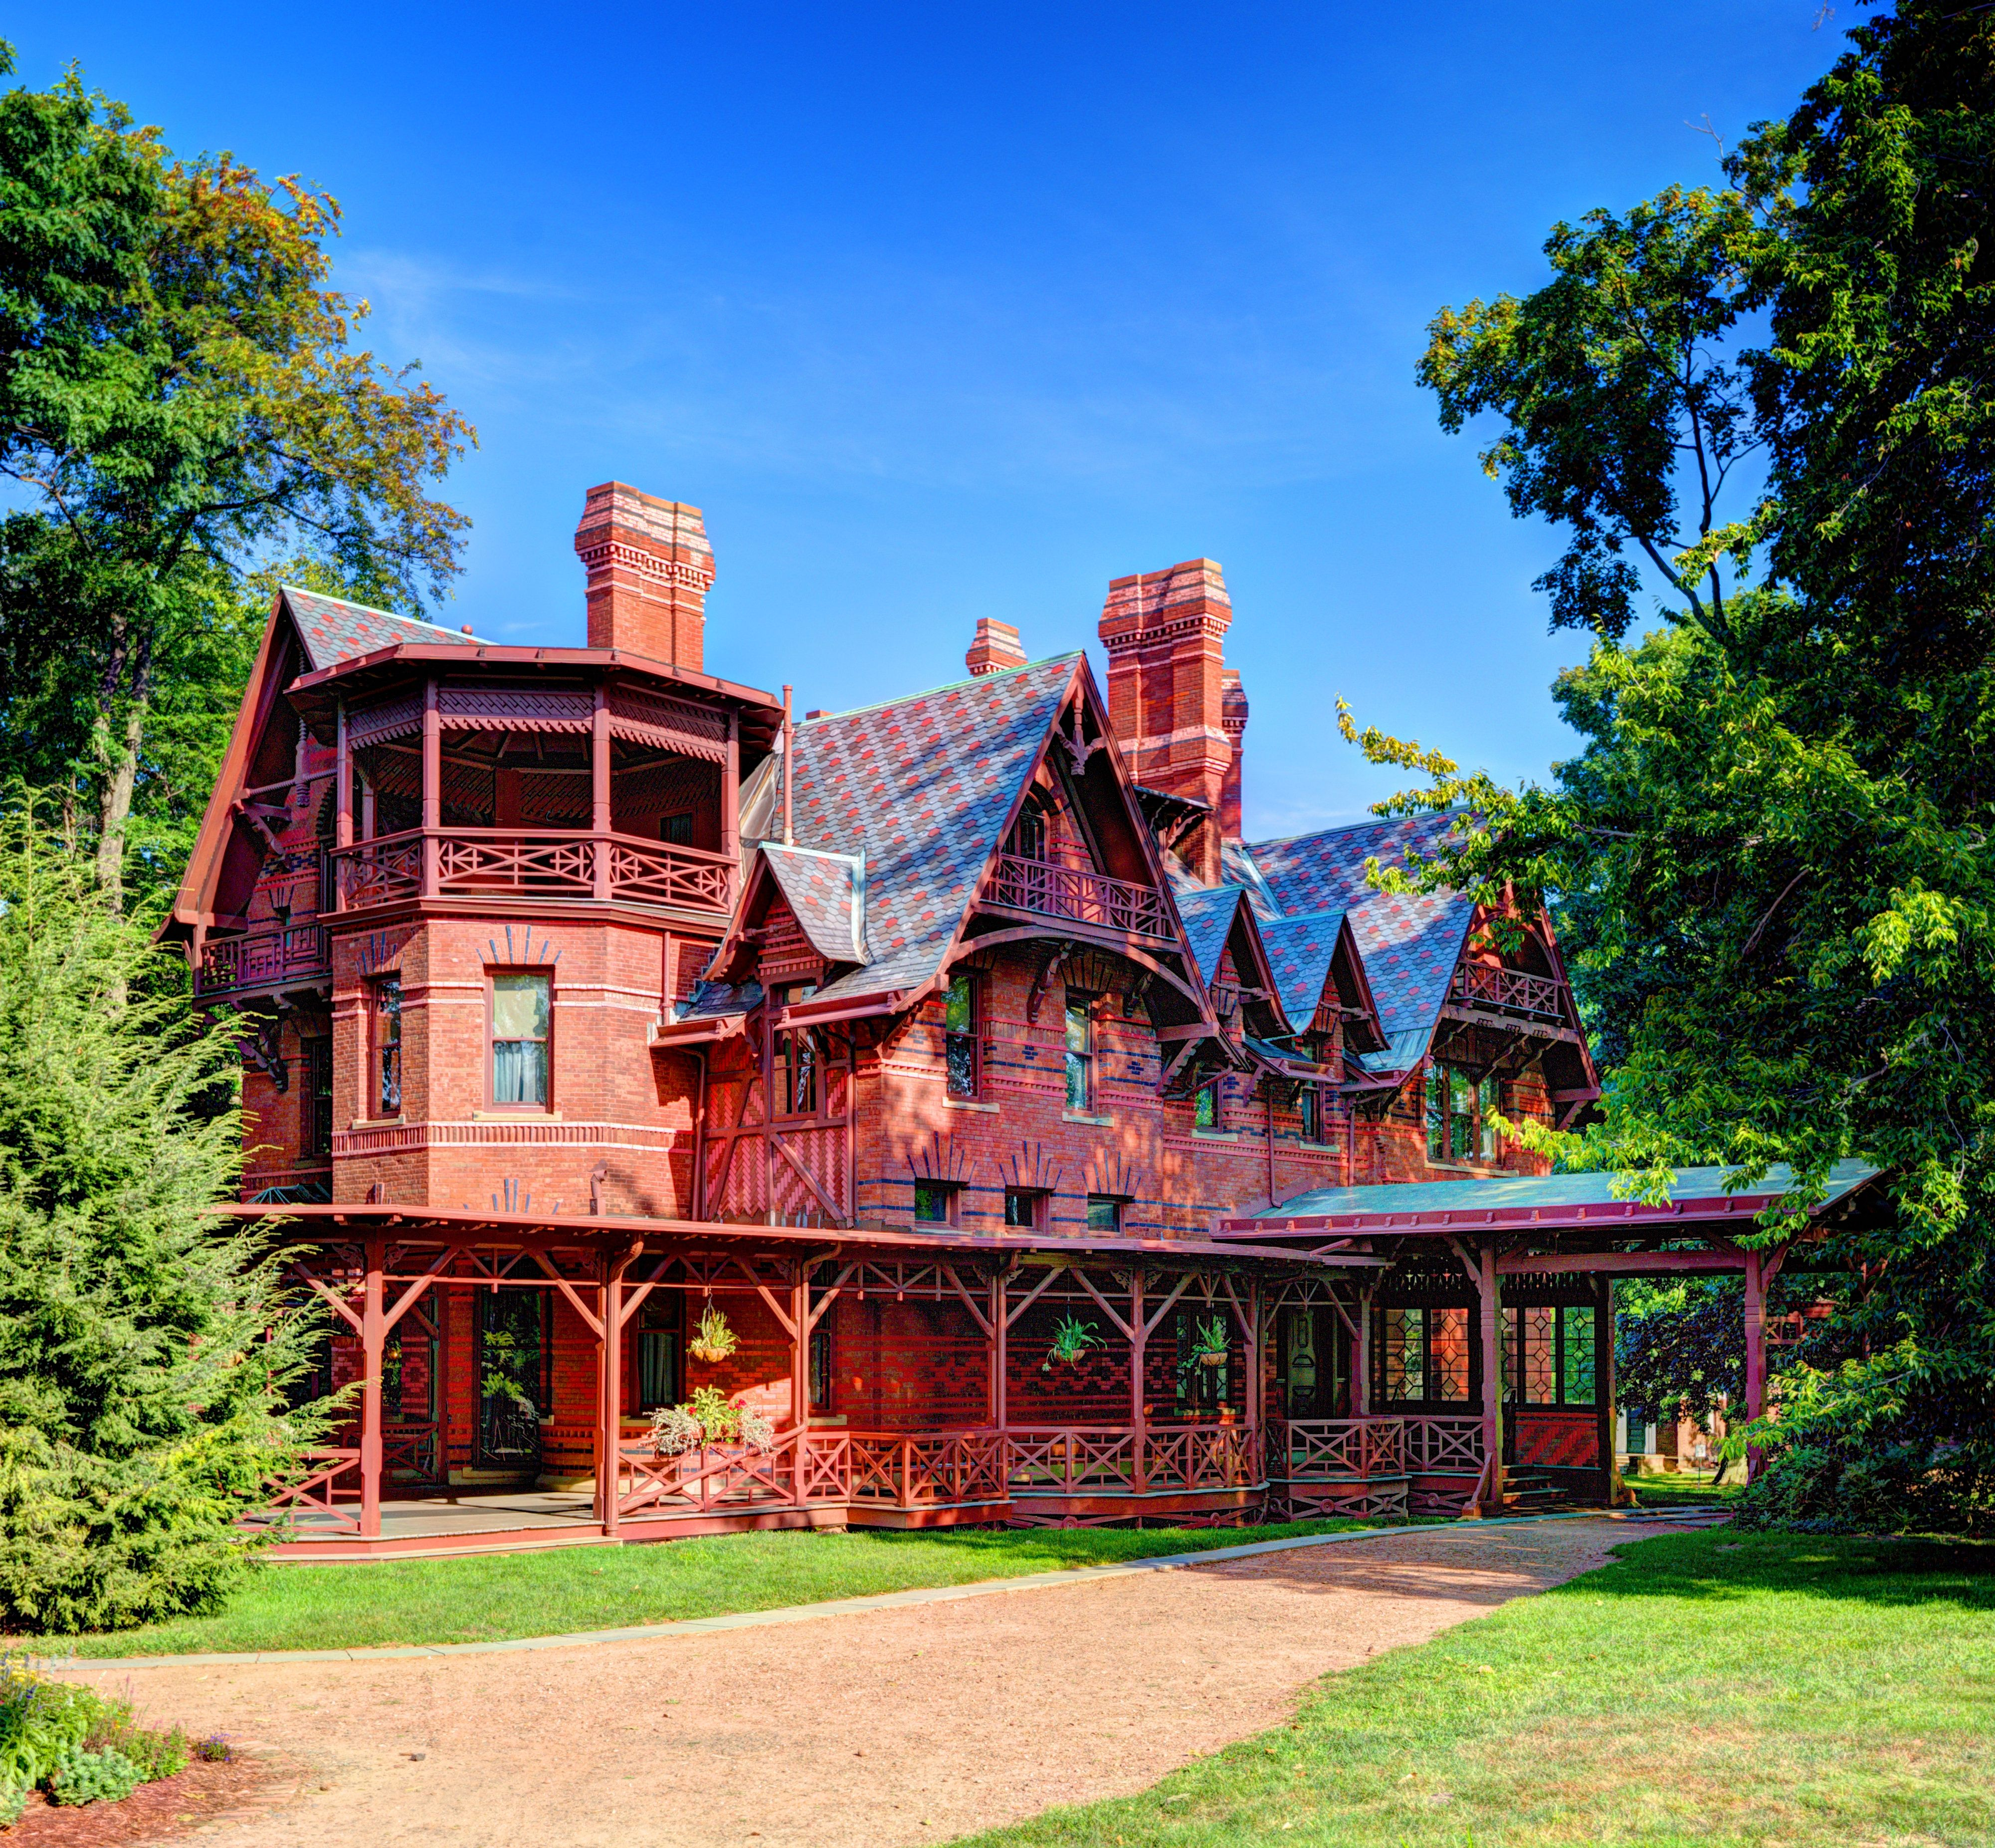 Mark Twain's idyllic home in Hartford, Connecticut.